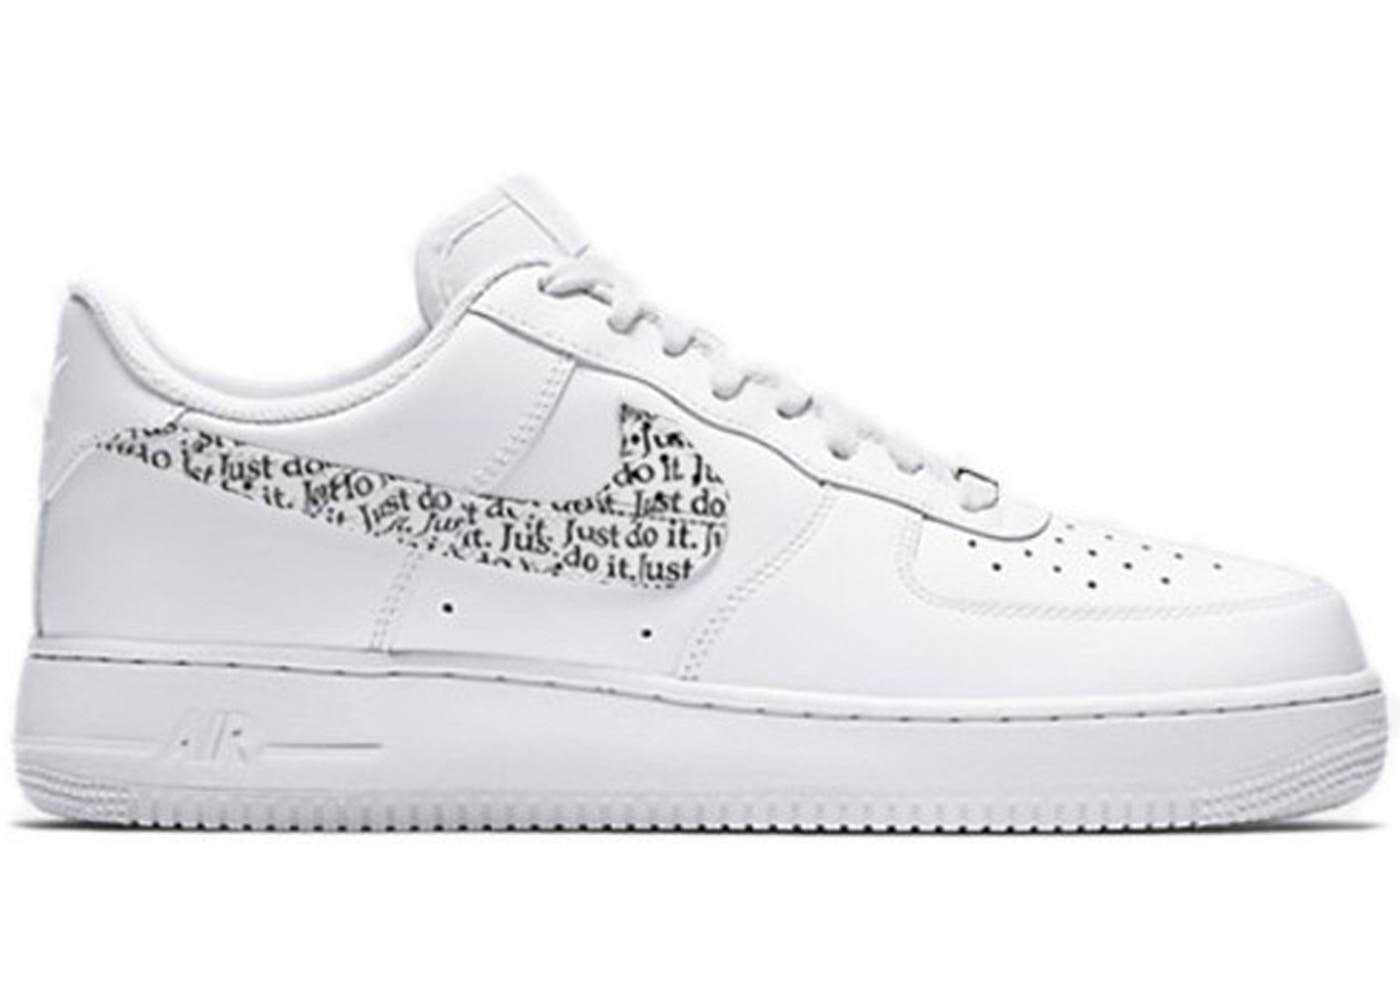 air force 1 per just do it